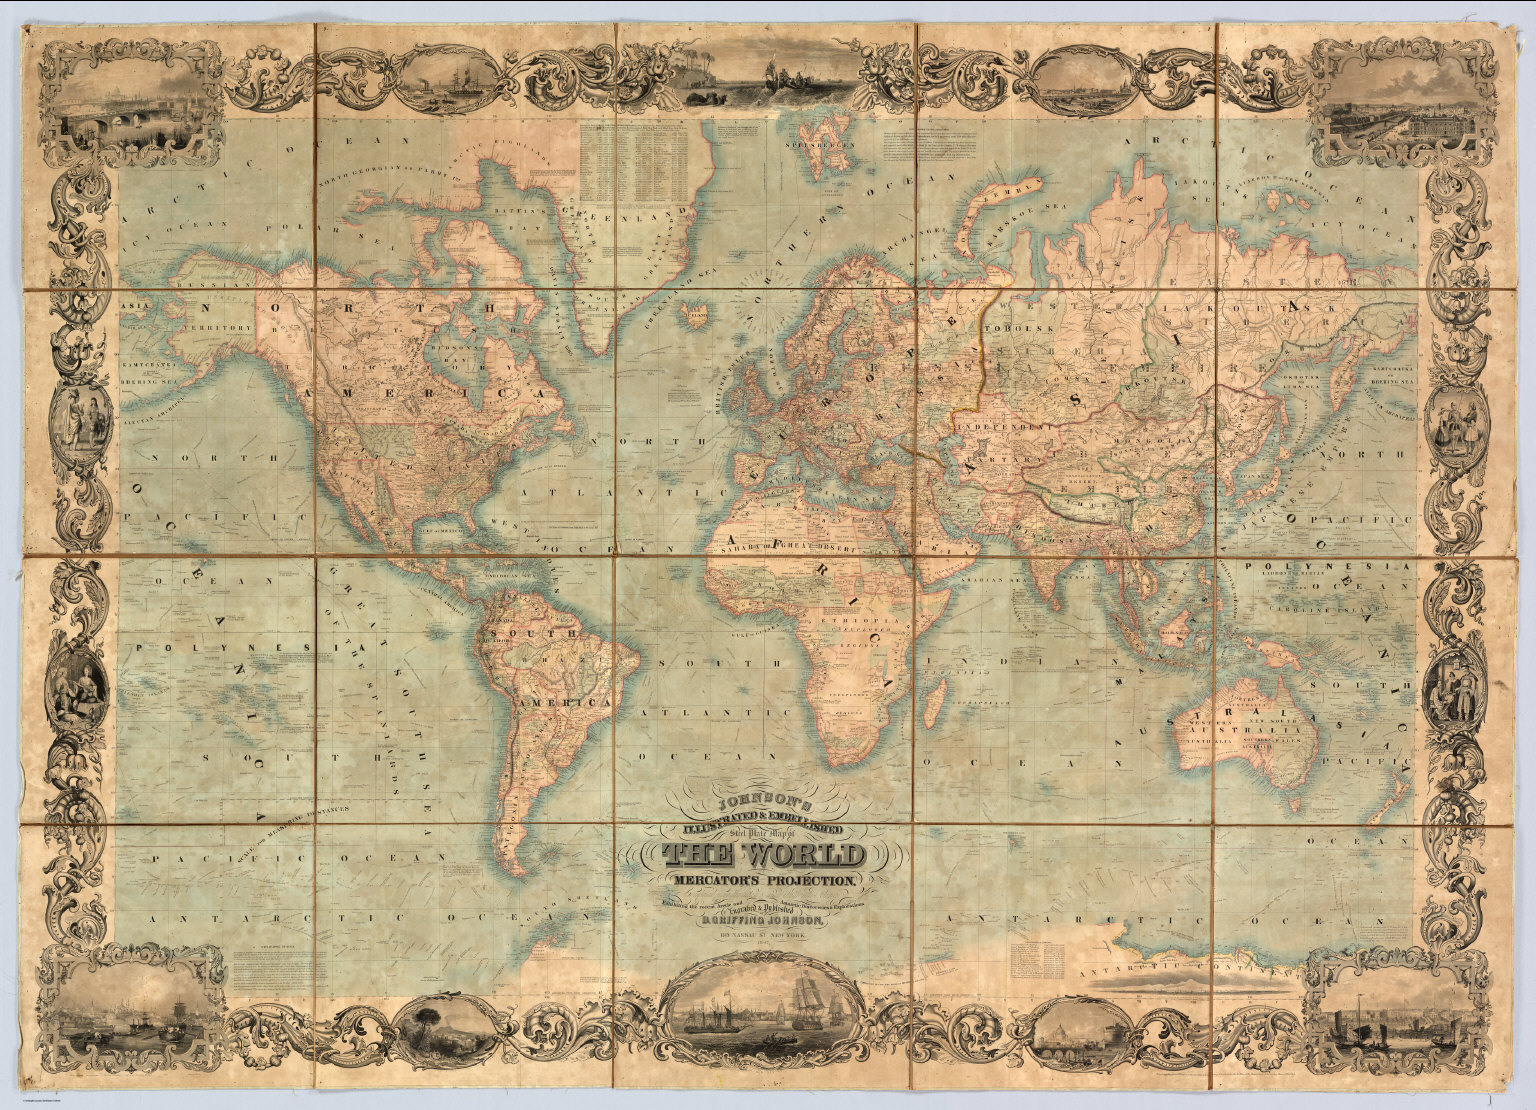 Mercator and the Map that 'Squared the Circle'